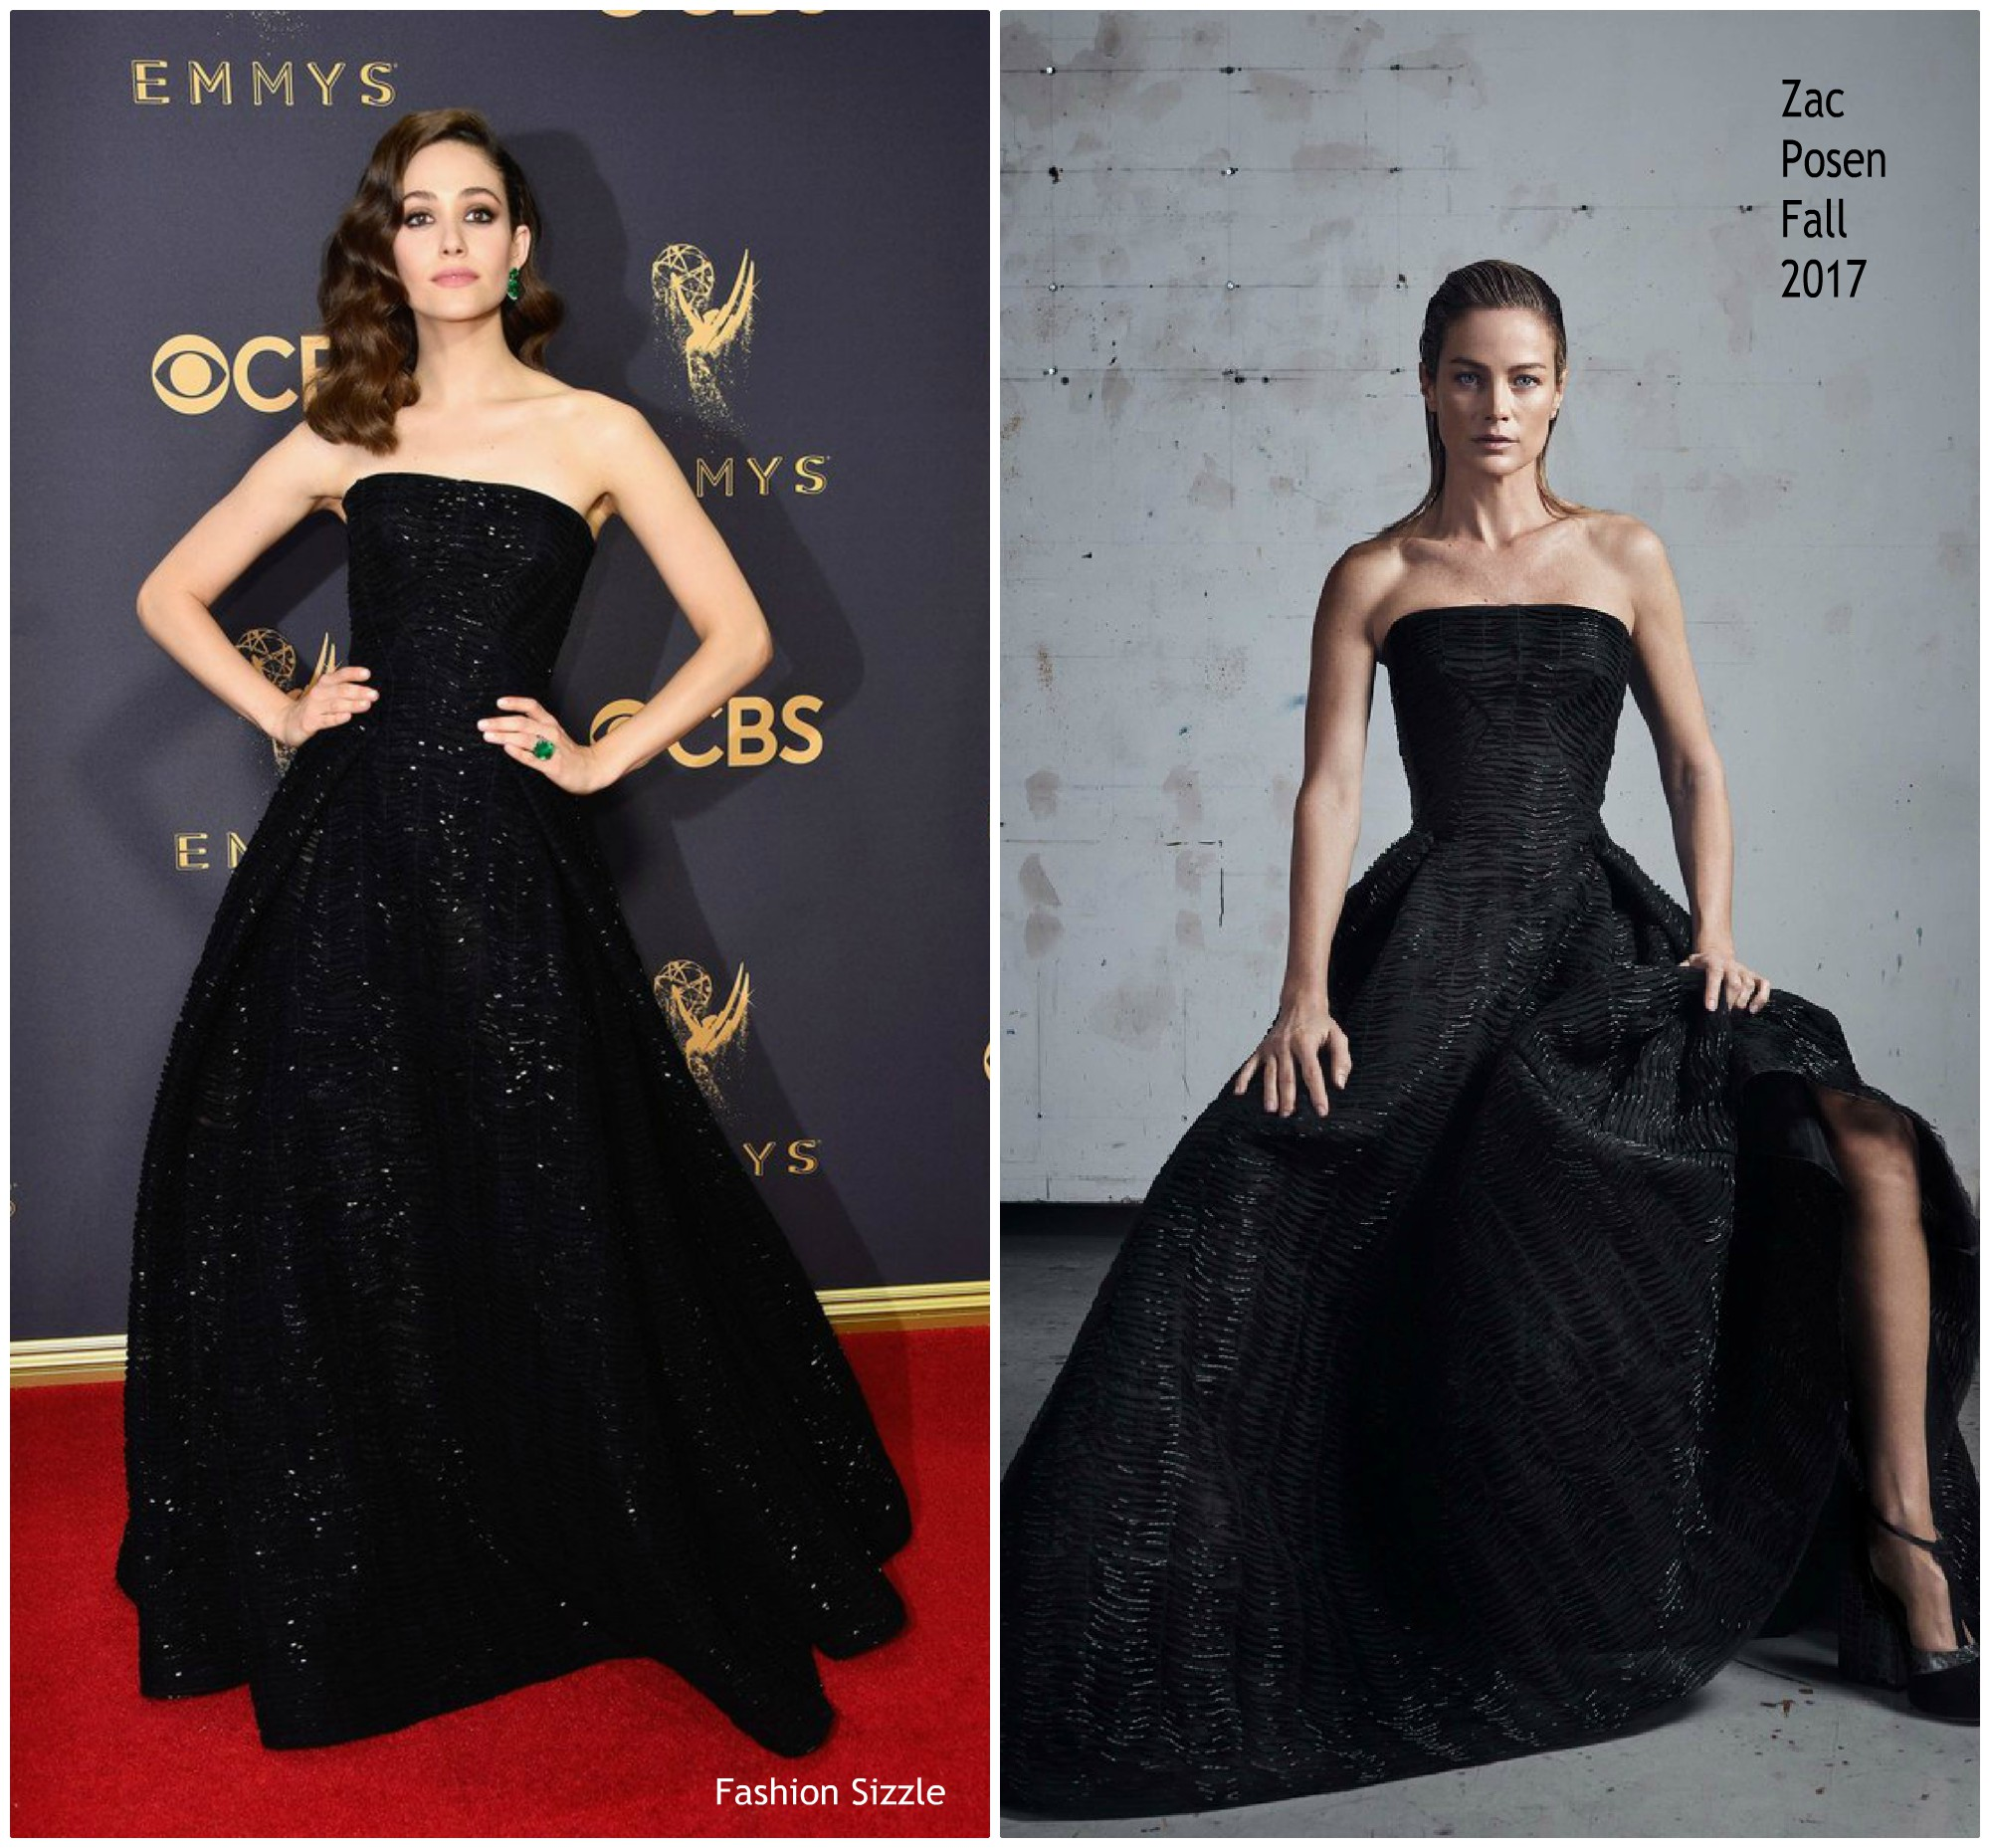 emmy-rossum-in-zac-posen-2017-emmy-awards